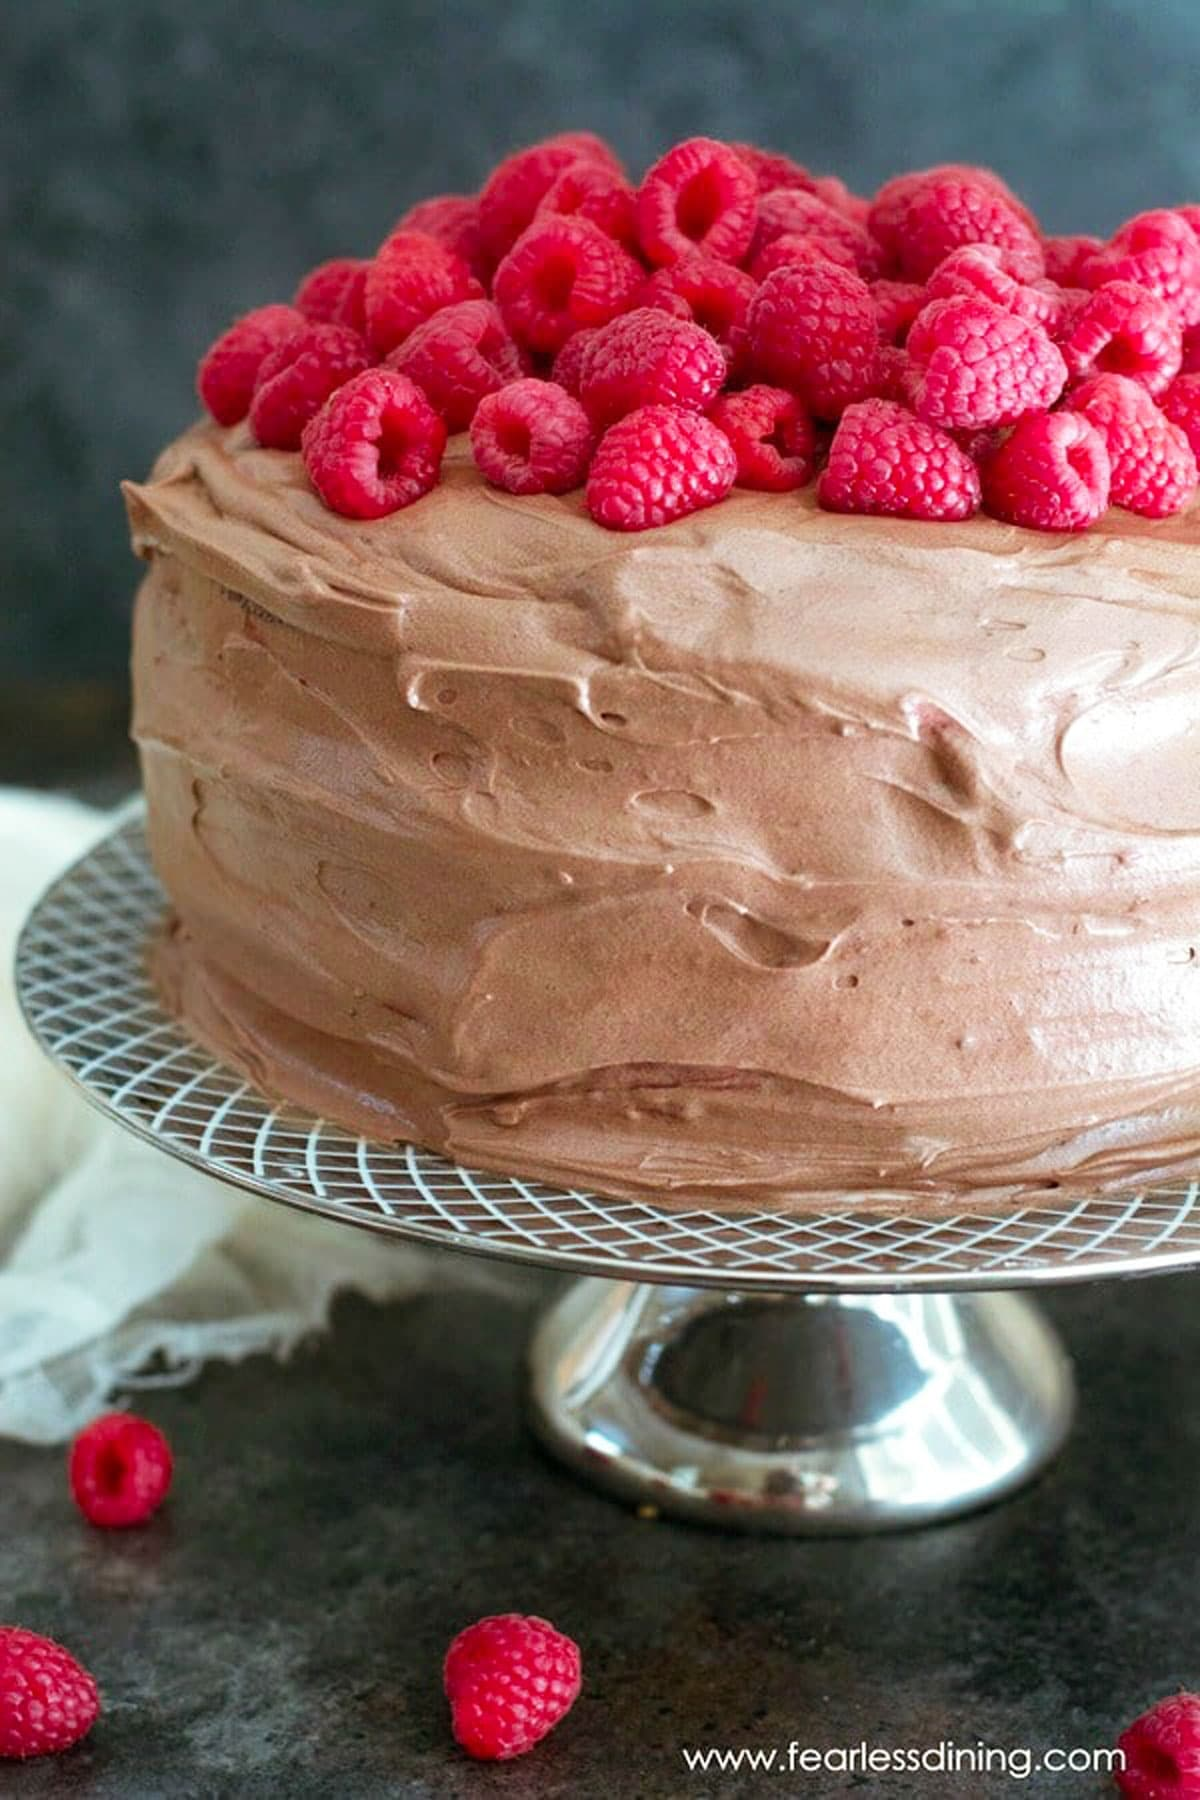 a frosted chocolate cake topped with fresh raspberries